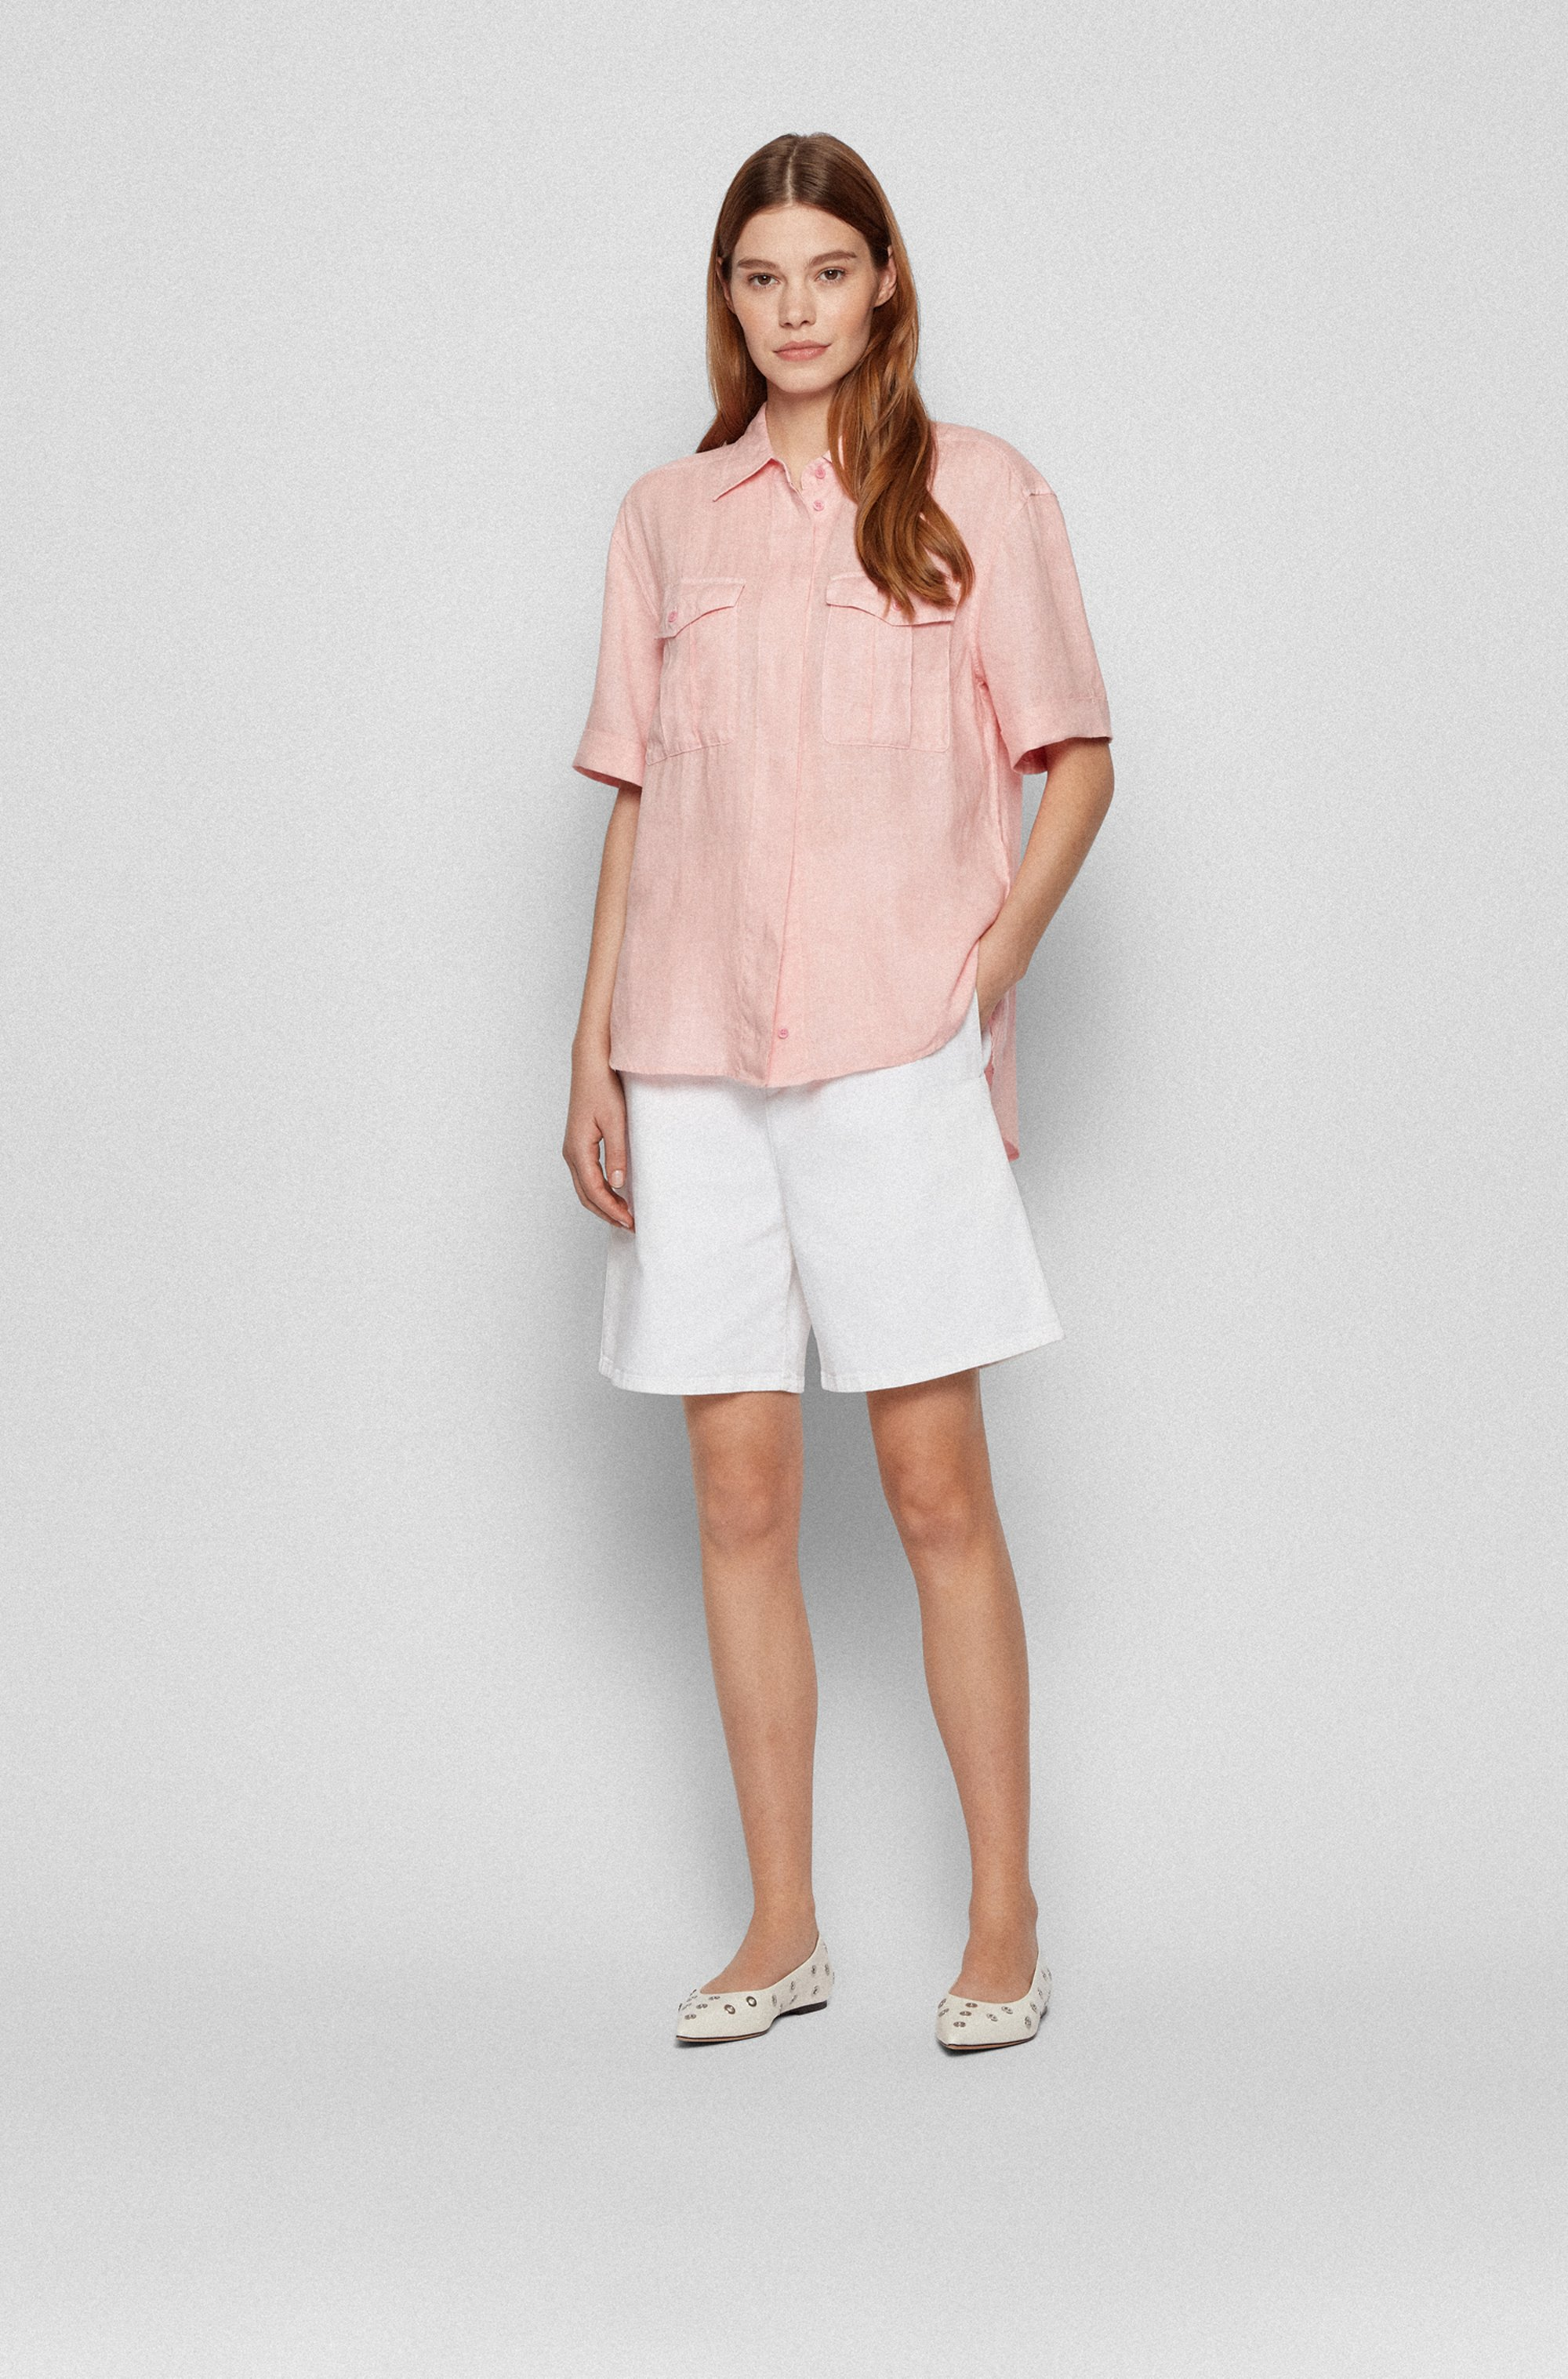 Short-sleeved linen blouse with chest pockets